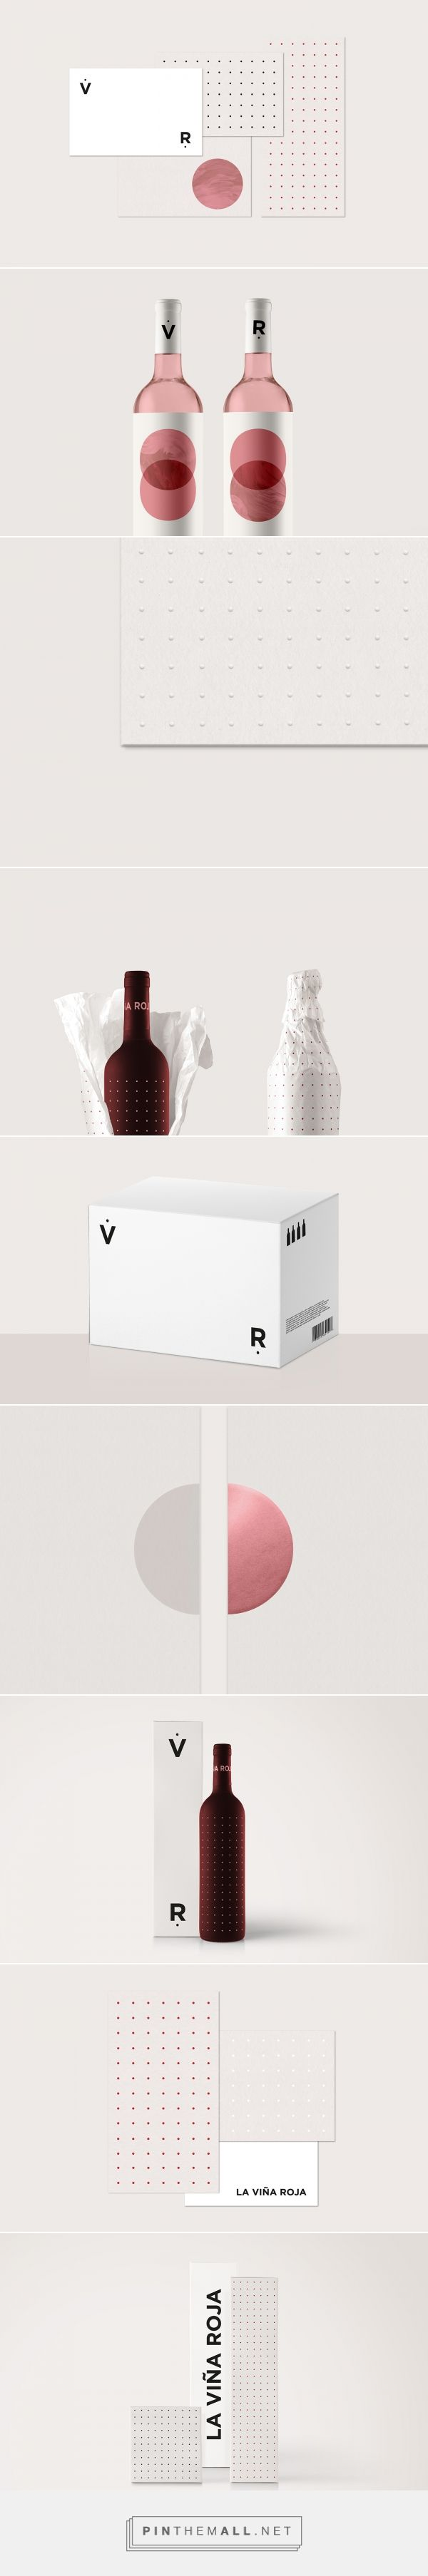 La Viña Roja Wine Branding and Packaging by Maria Hdez | Fivestar Branding Agency – Design and Branding Agency & Curated Inspiration Gallery